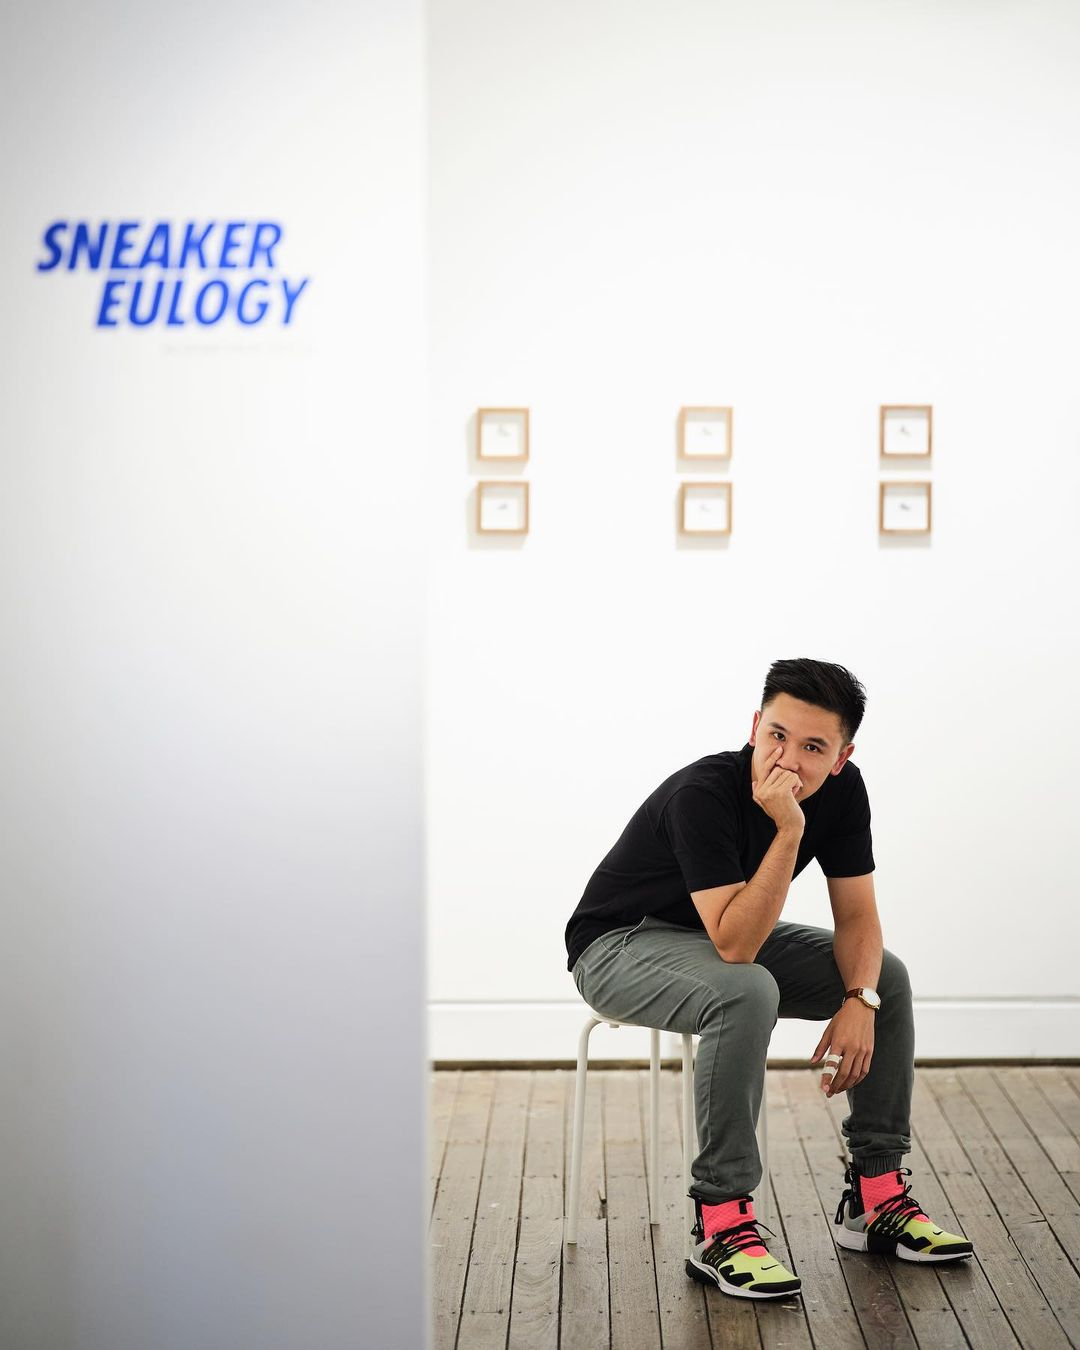 EricNg-perfectlynormal-sneaker-eulogy-2